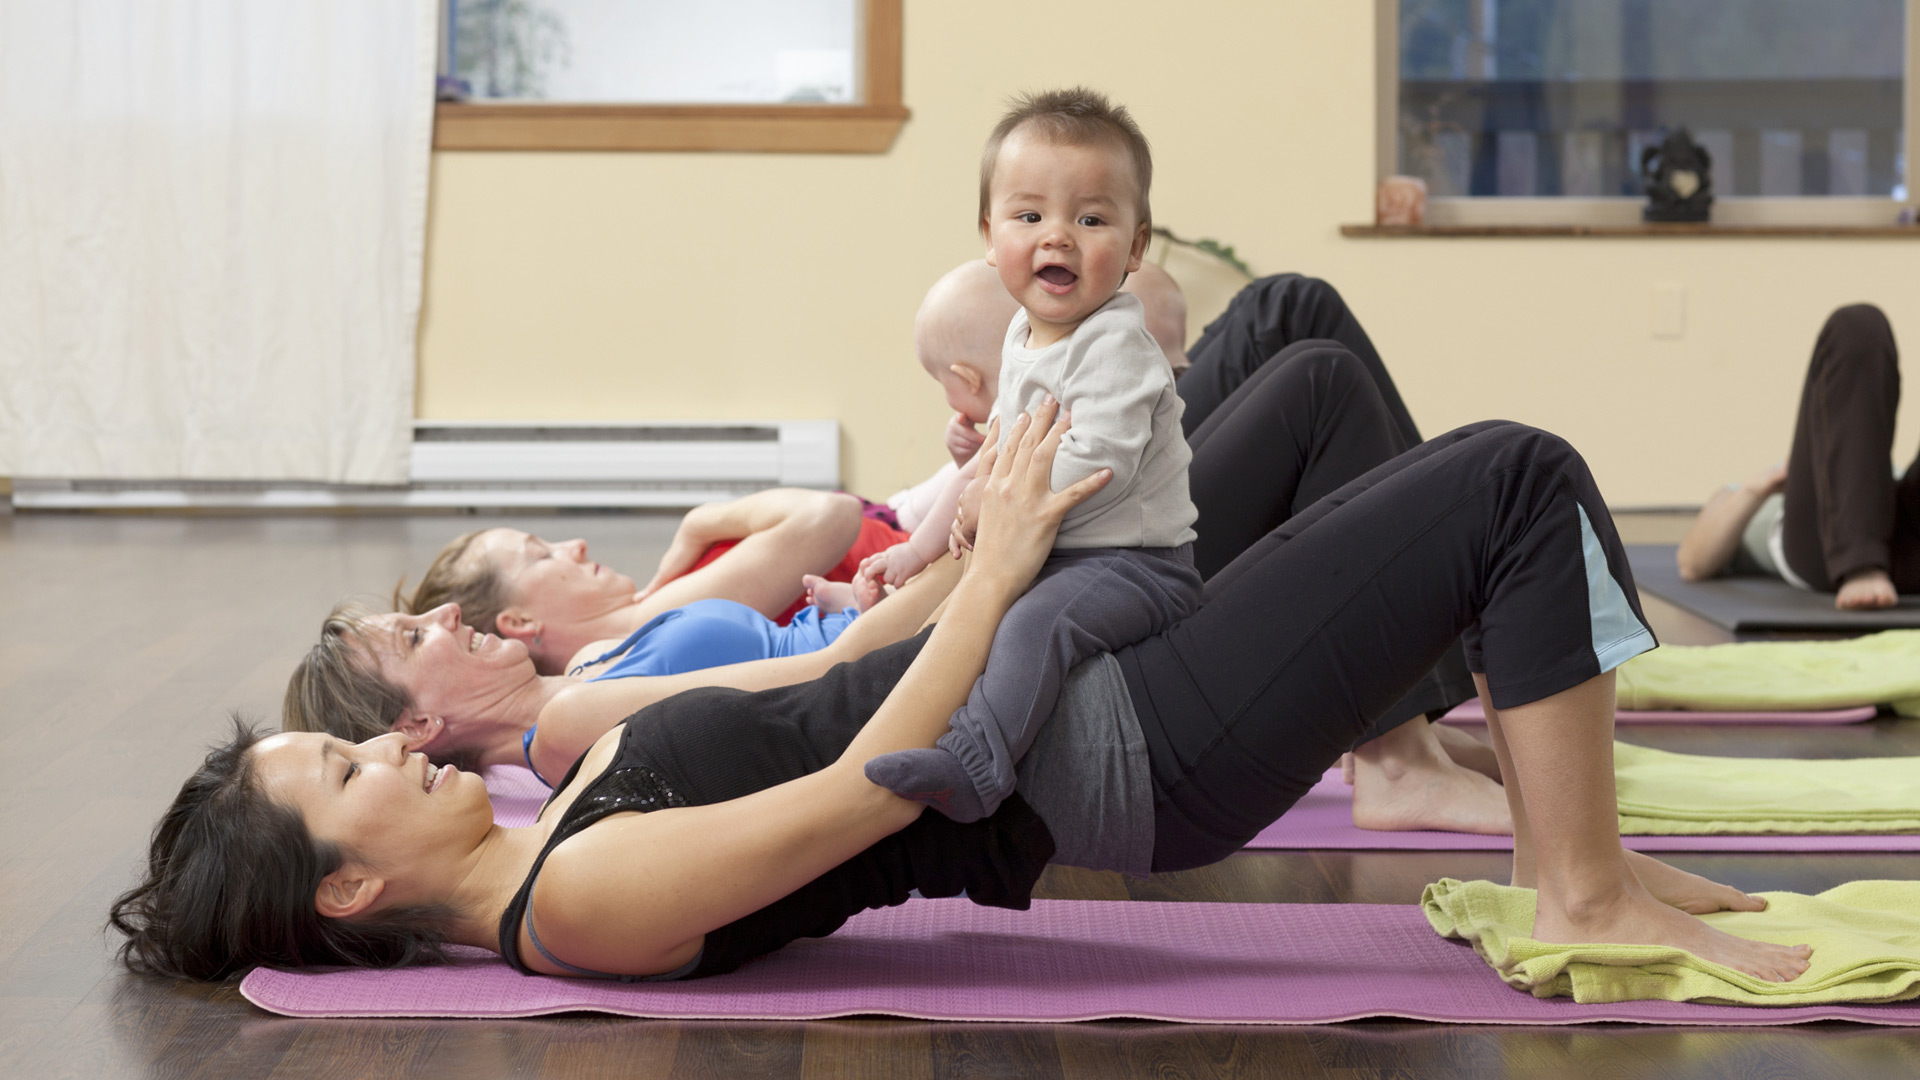 Mother doing yoga with baby | PregnancyAndBaby.com